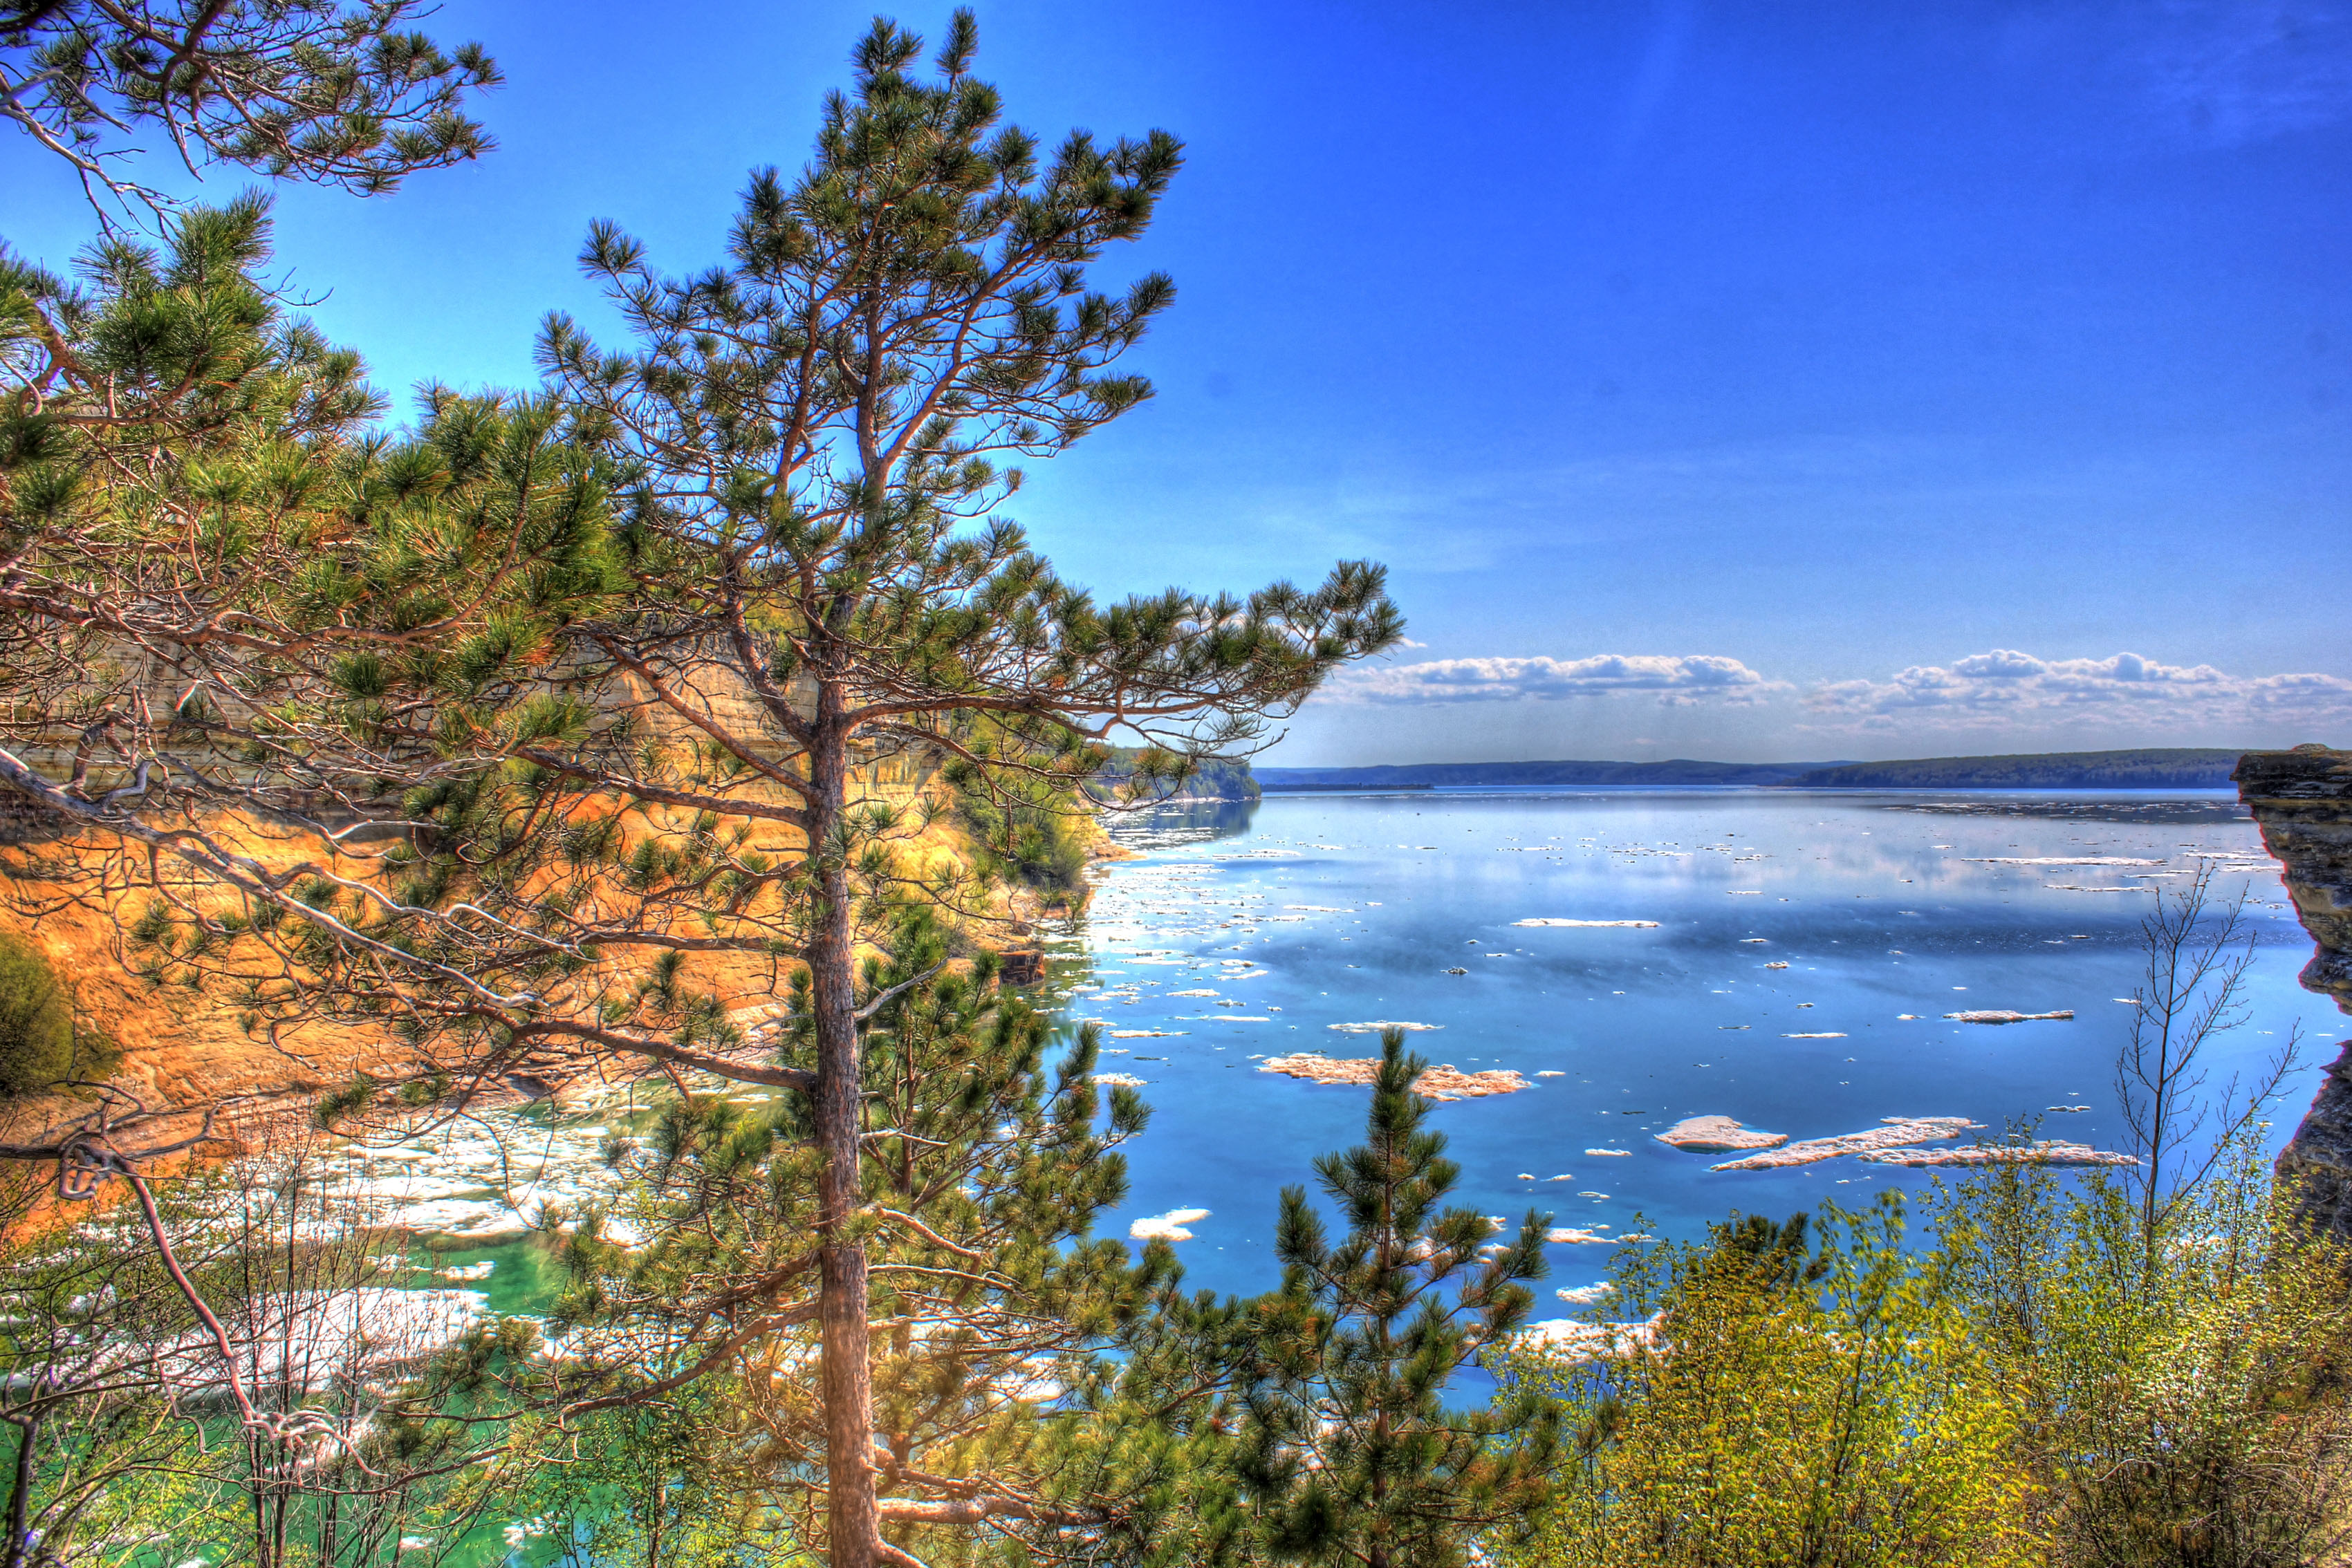 file gfp michigan pictured rocks national lakeshore beautiful landscape of the forest and bay jpg wikimedia commons https commons wikimedia org wiki file gfp michigan pictured rocks national lakeshore beautiful landscape of the forest and bay jpg